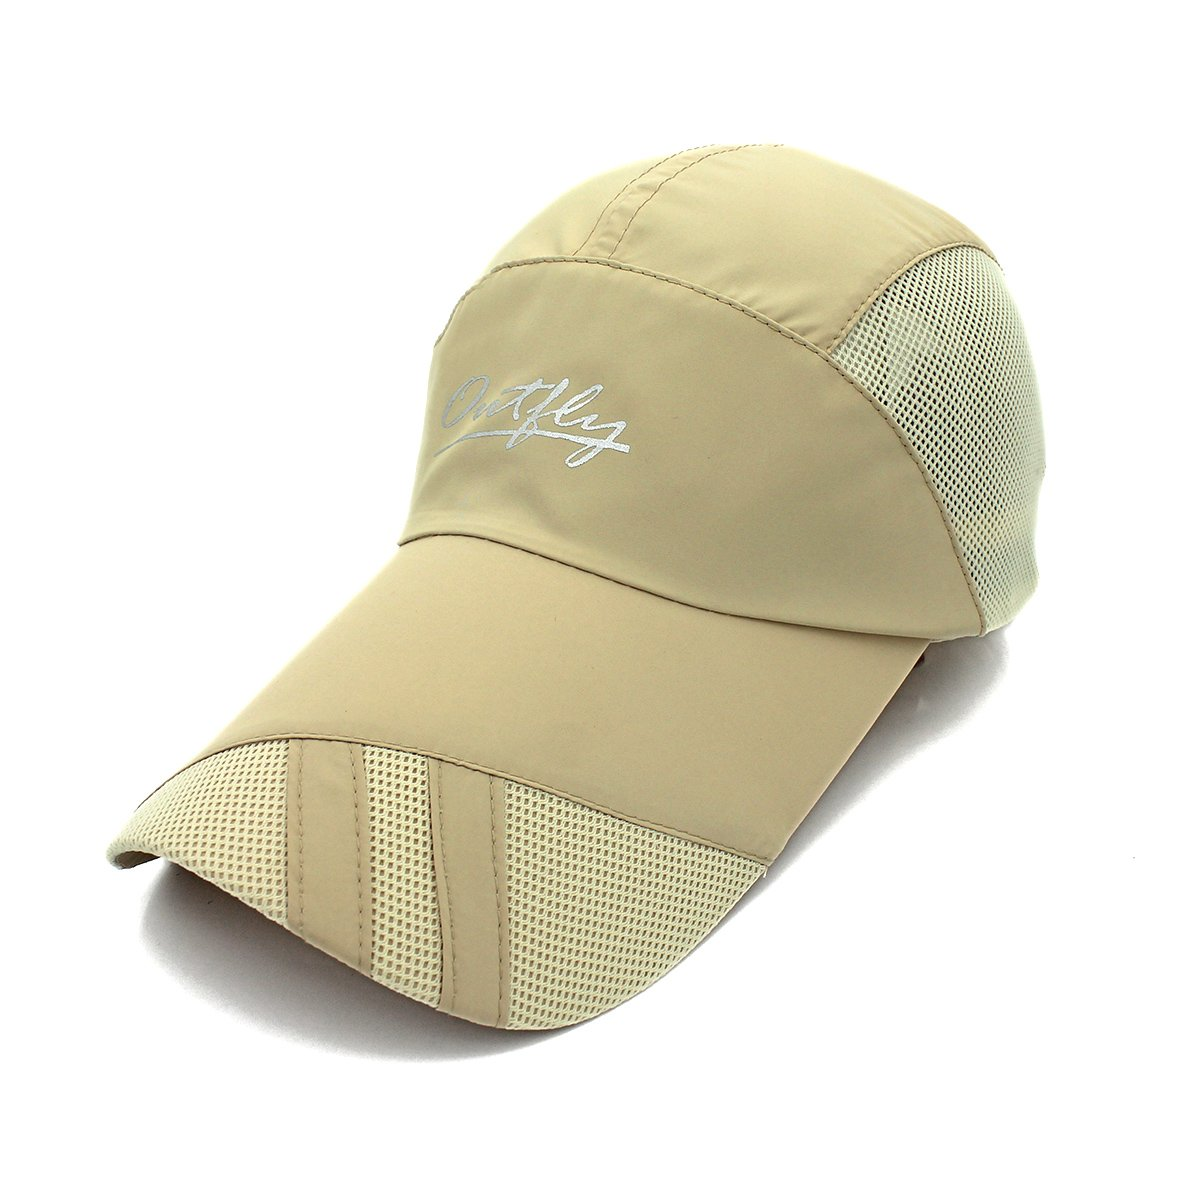 outfly Lightweight Baseball Cap Quick Dry Outdoor Sport Running hat Lengthen Brim Sun Protection Breathable Hat Cap 55-62cm Grey A18002